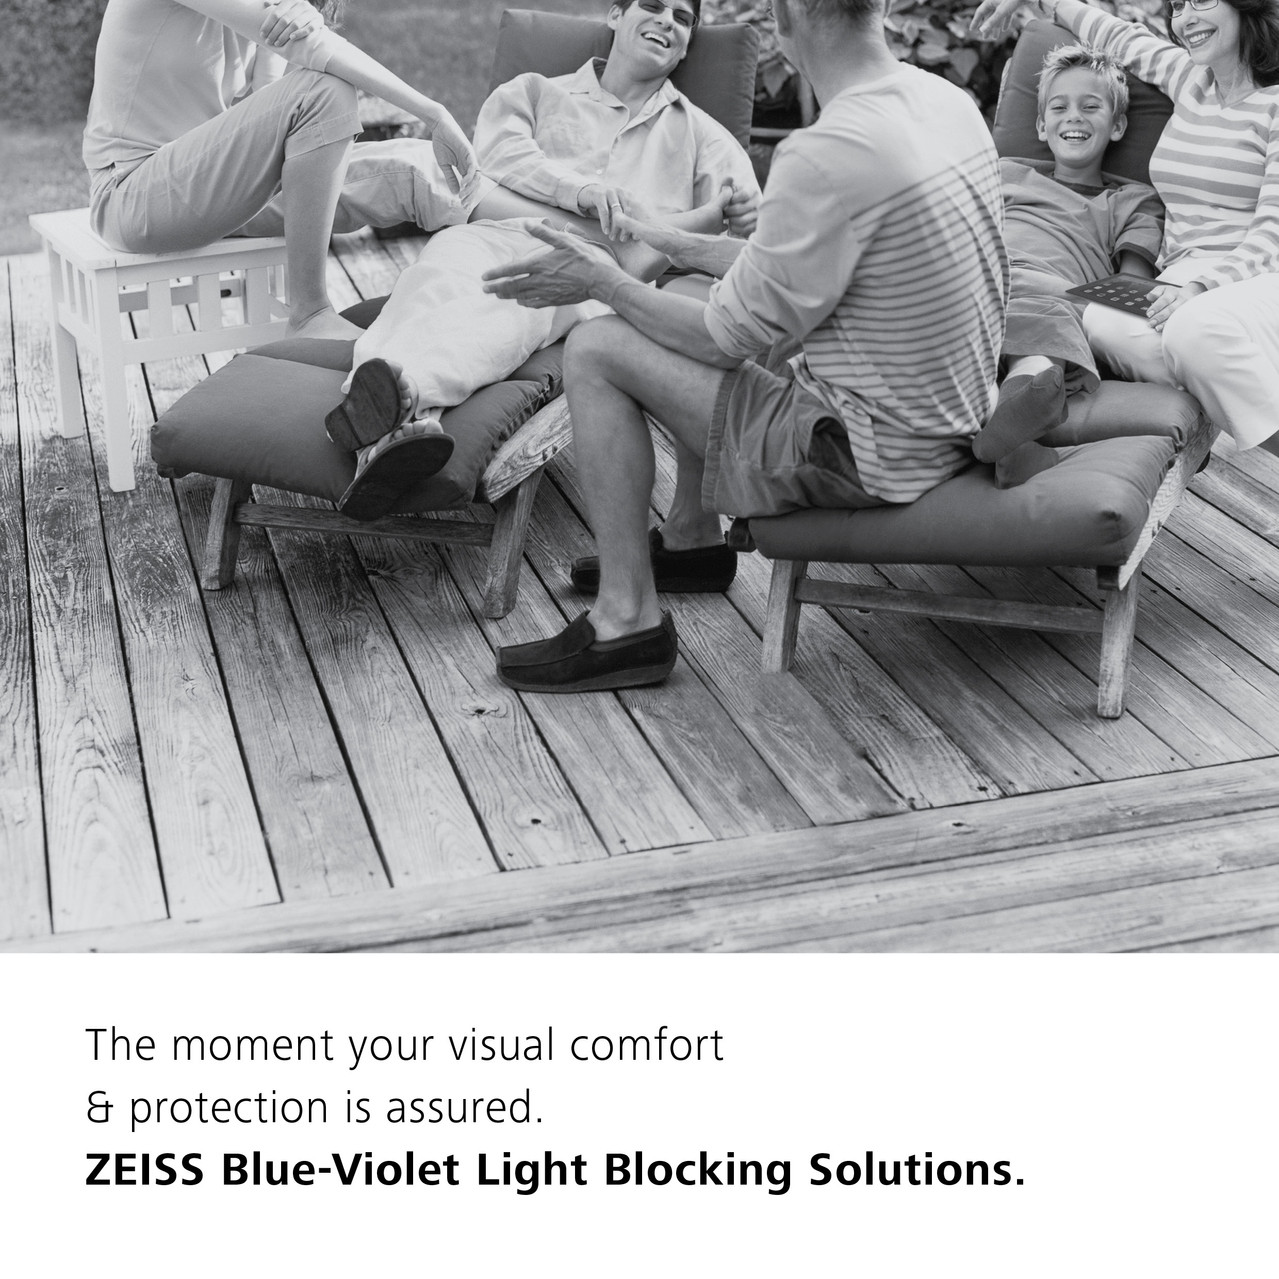 zeiss_duravision_blueprotect_visual_port